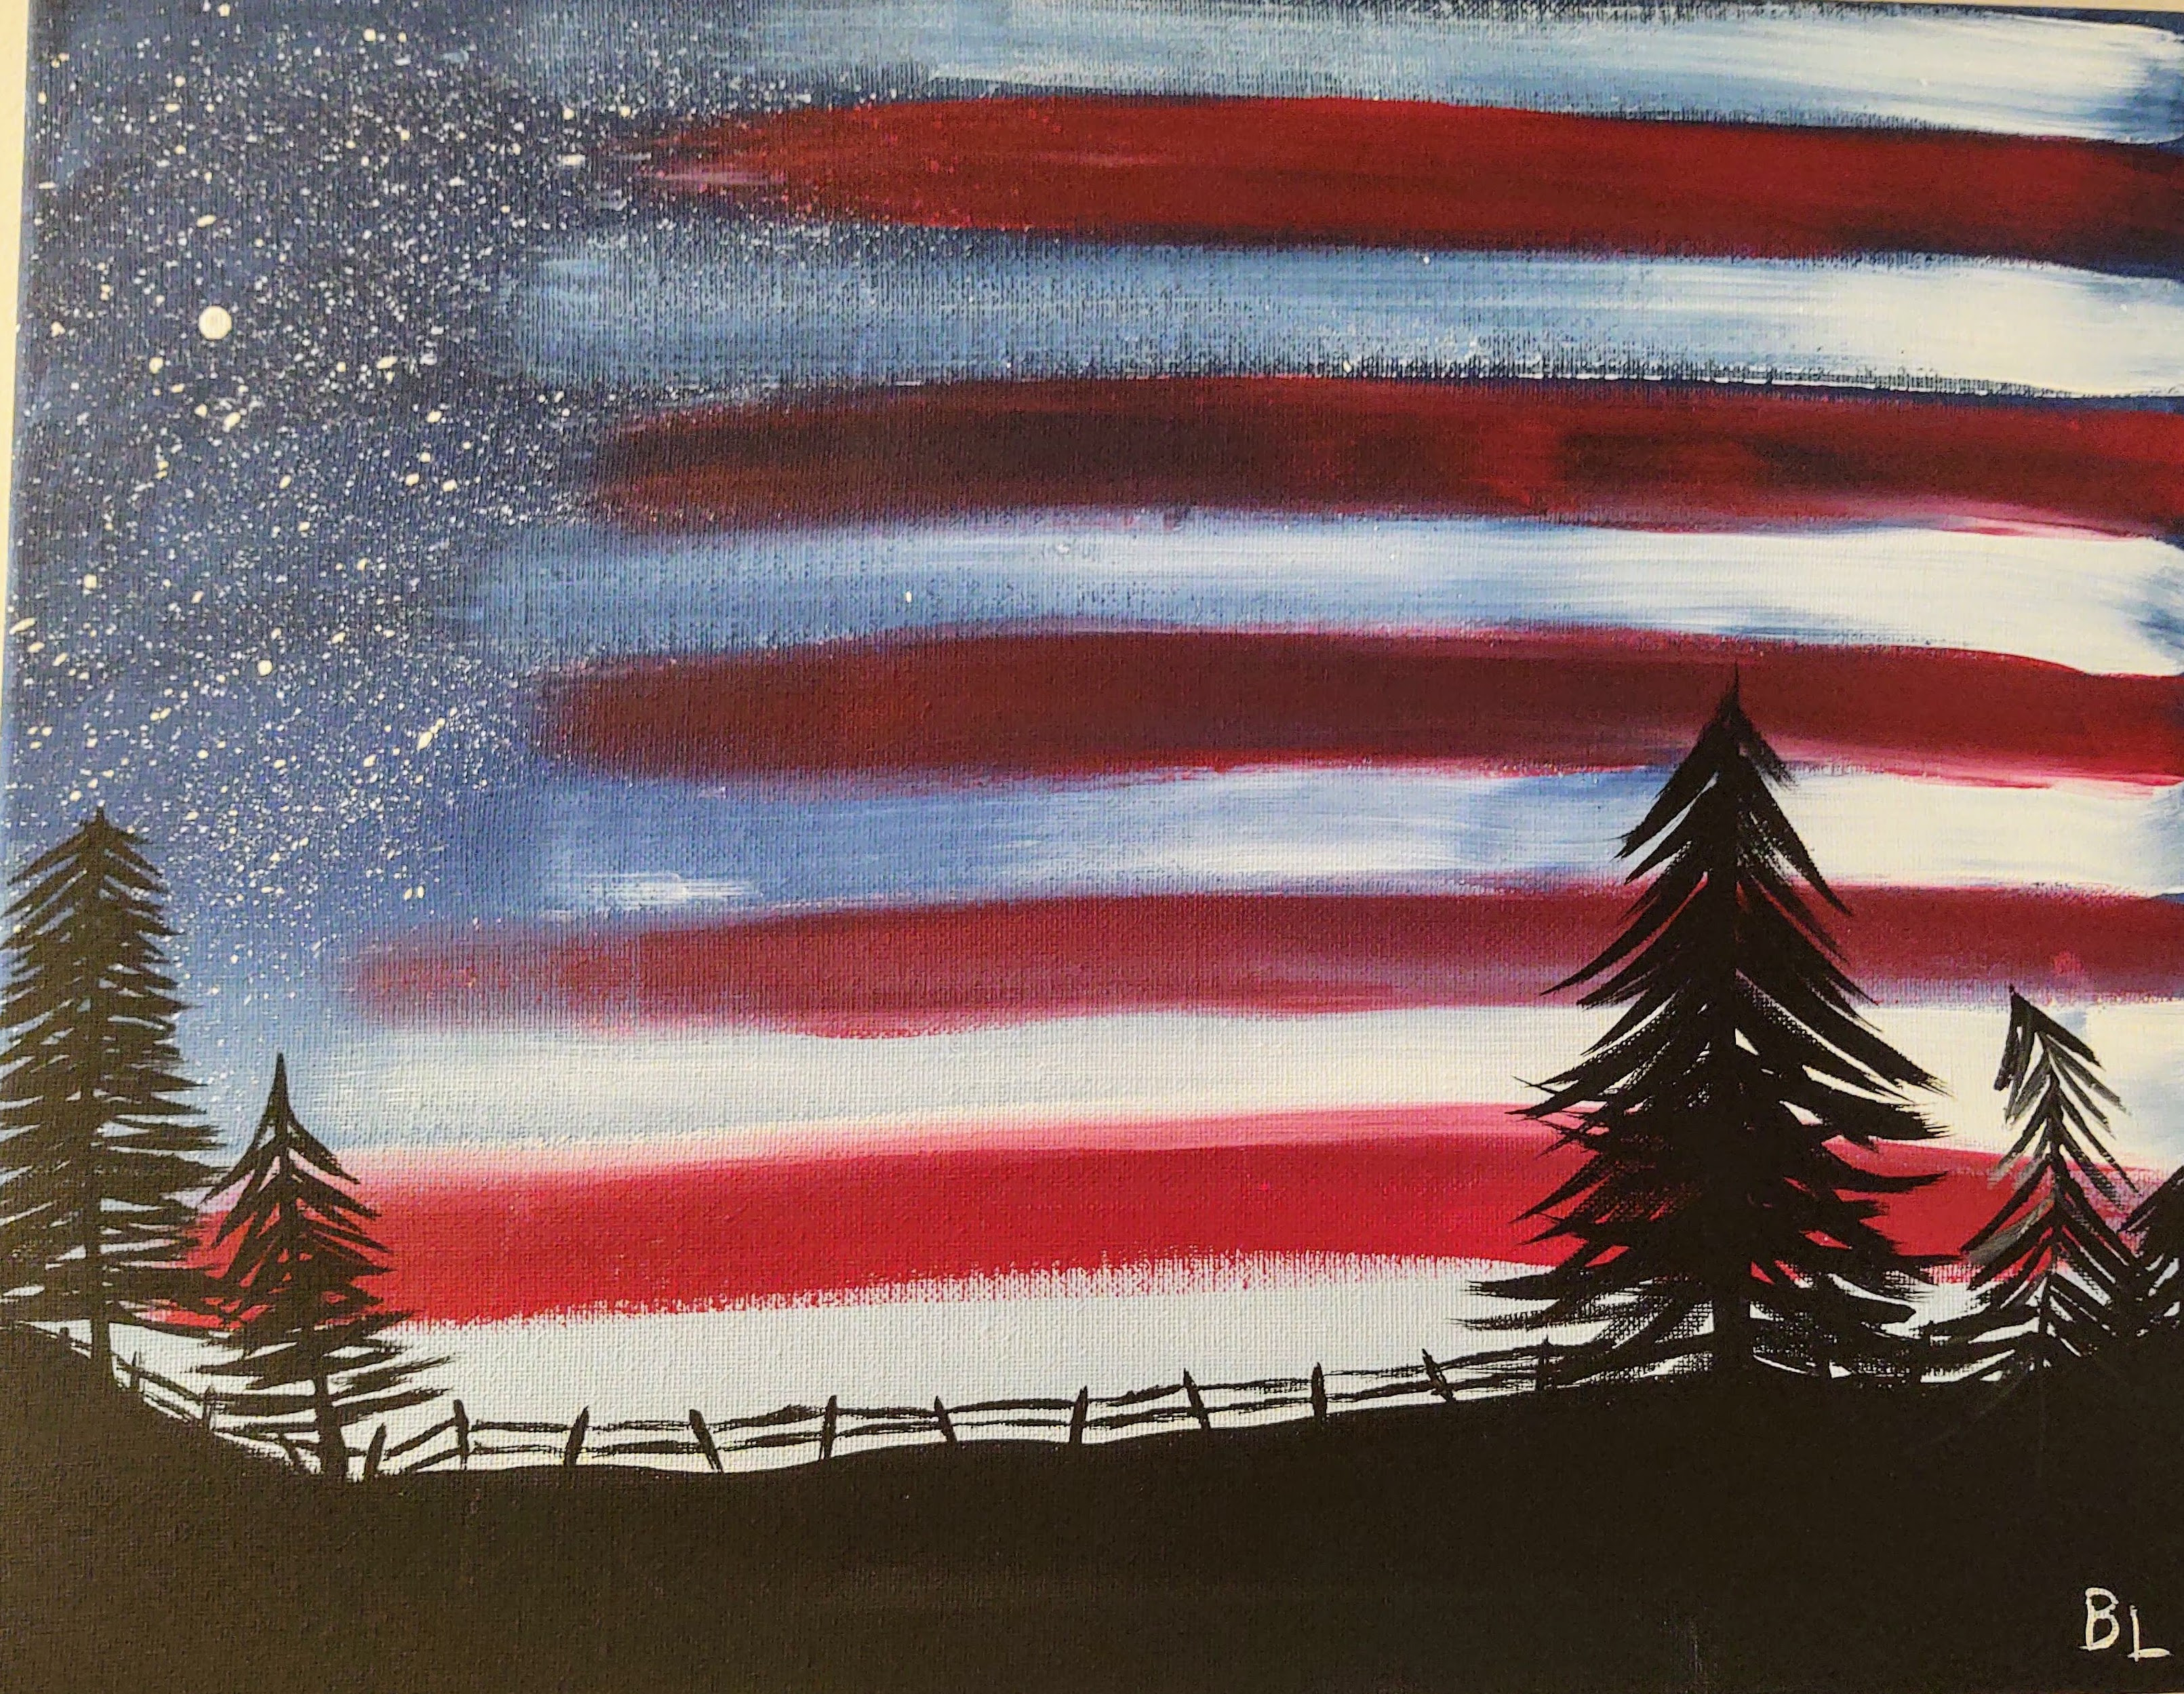 Adult Craft & Connect: Star Spangled Sky